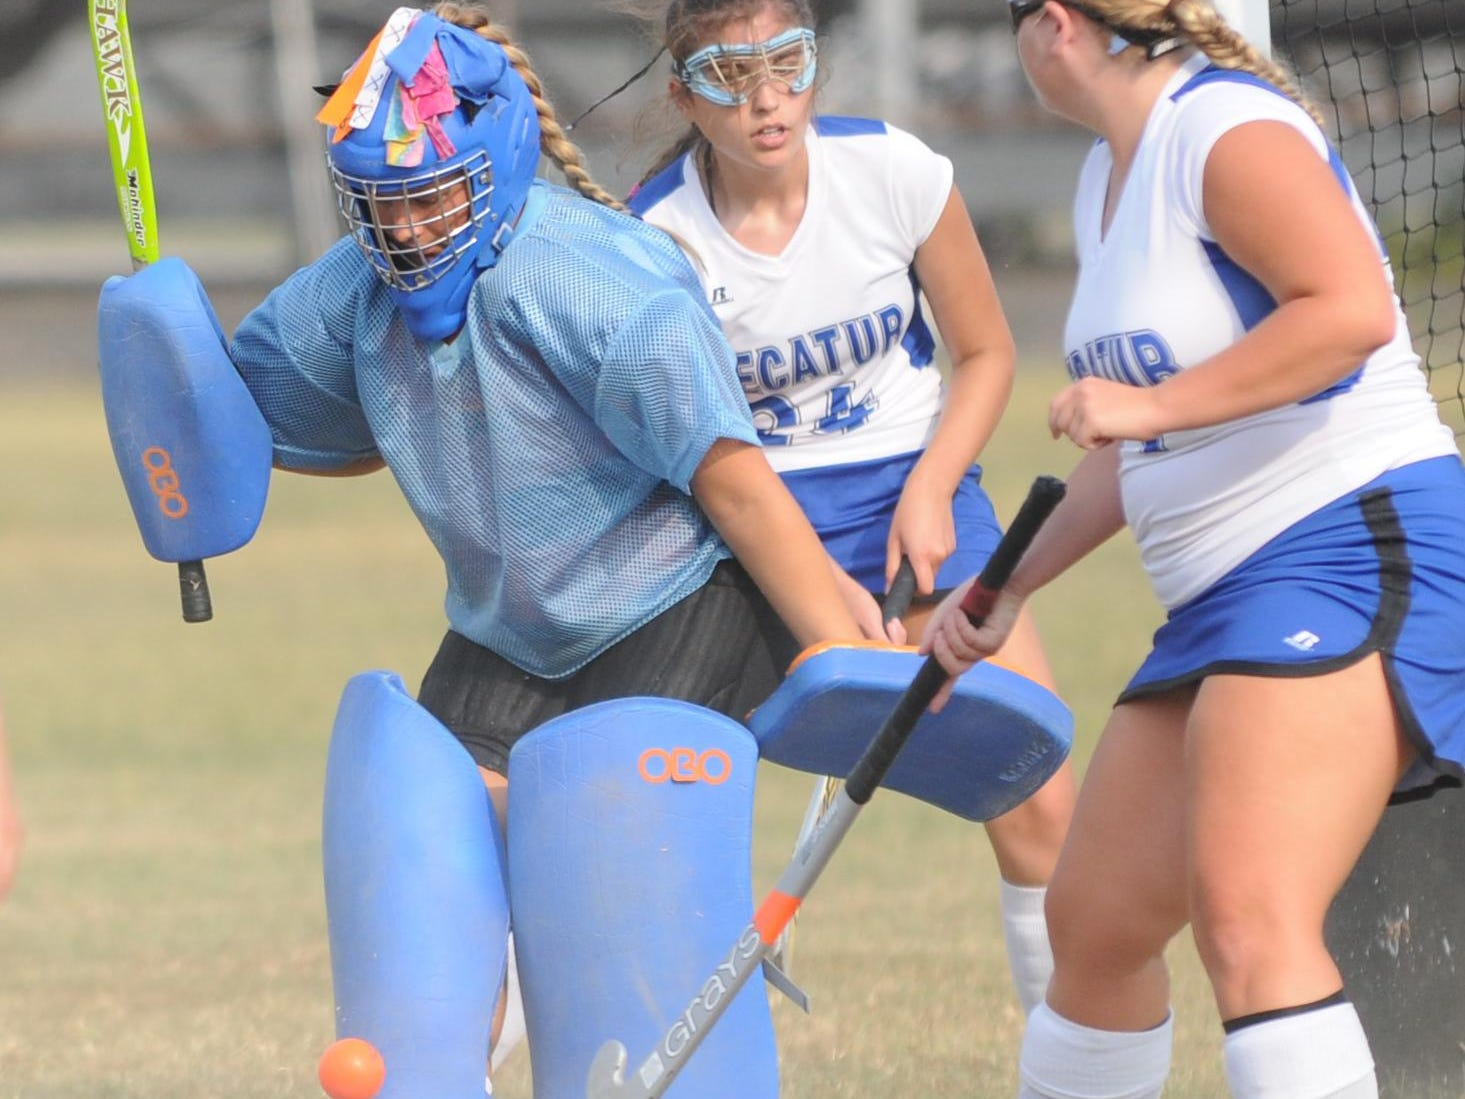 Stephen Decatur goalie Sophia Clemente comes up with a save against Indian River.